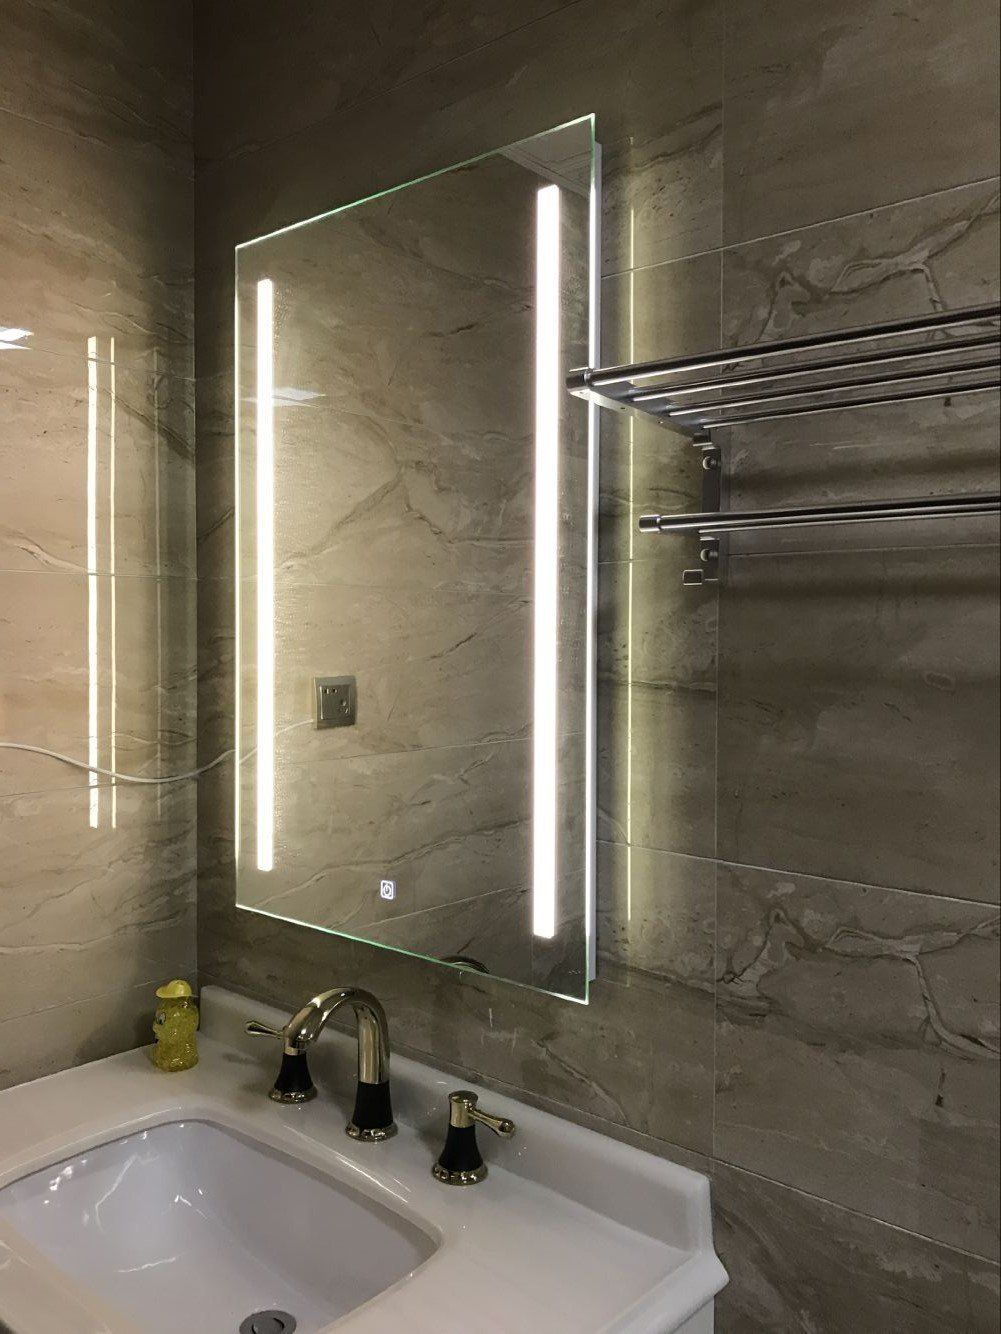 Diyhd W36 X H36 Wall Mount Led Backlit Lighted Bathroom Mirror Vanity Defogger 2 Vertical Lights Rectangular Touch Light You Can Find Out More